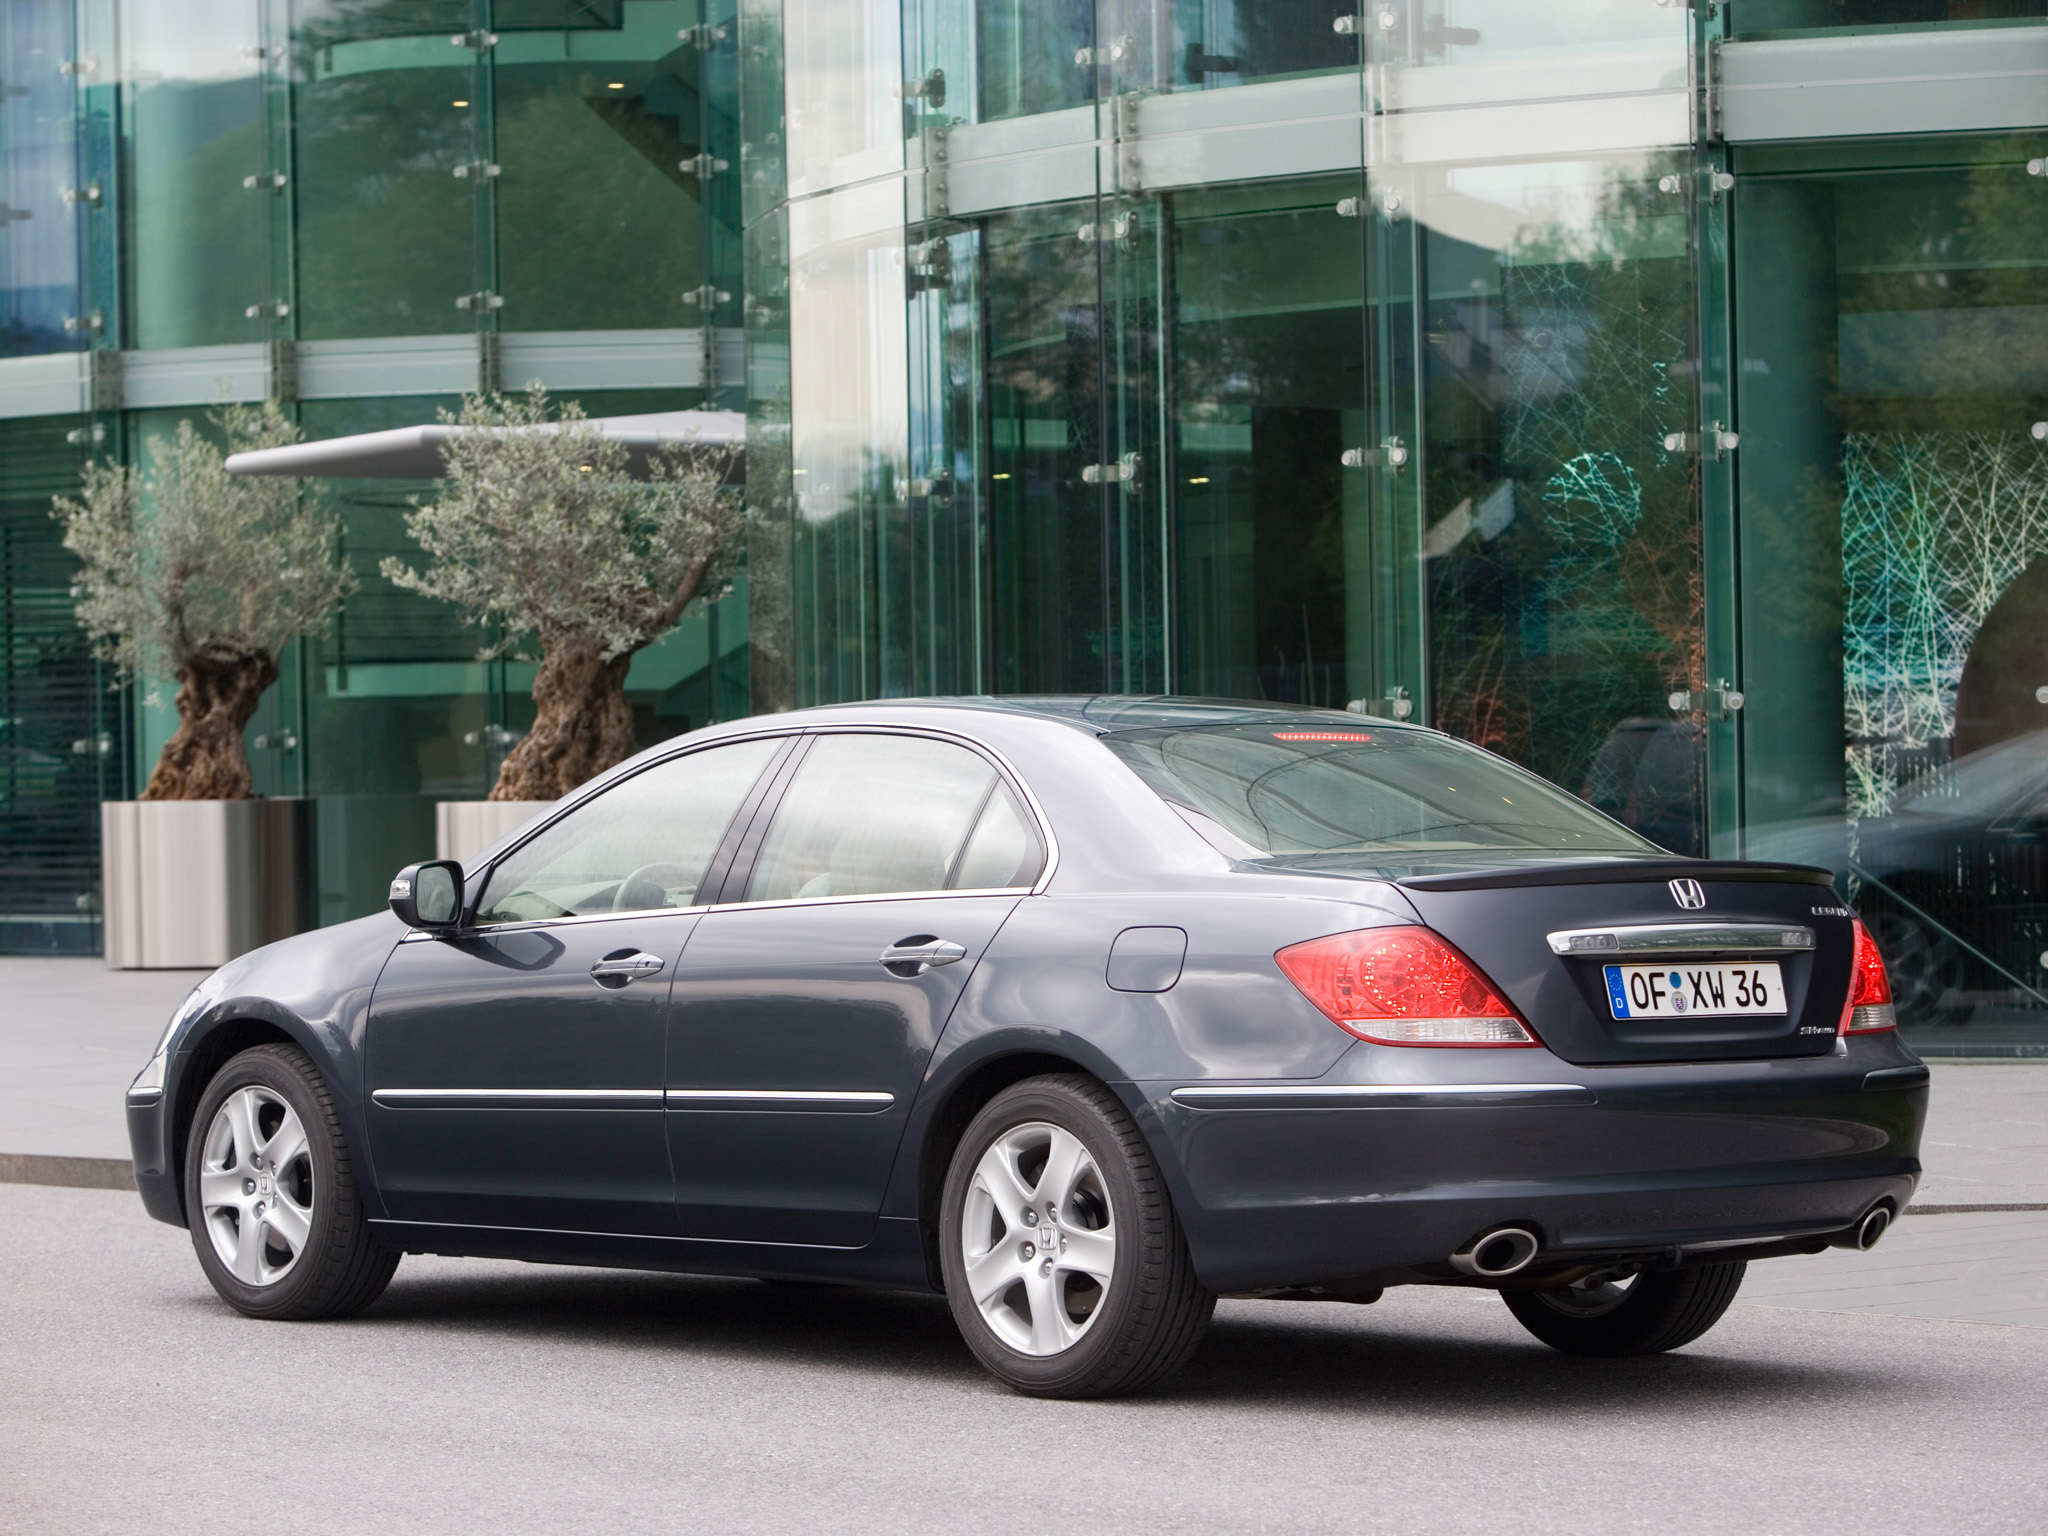 Cars honda legend iv (kb1) 2004 #9